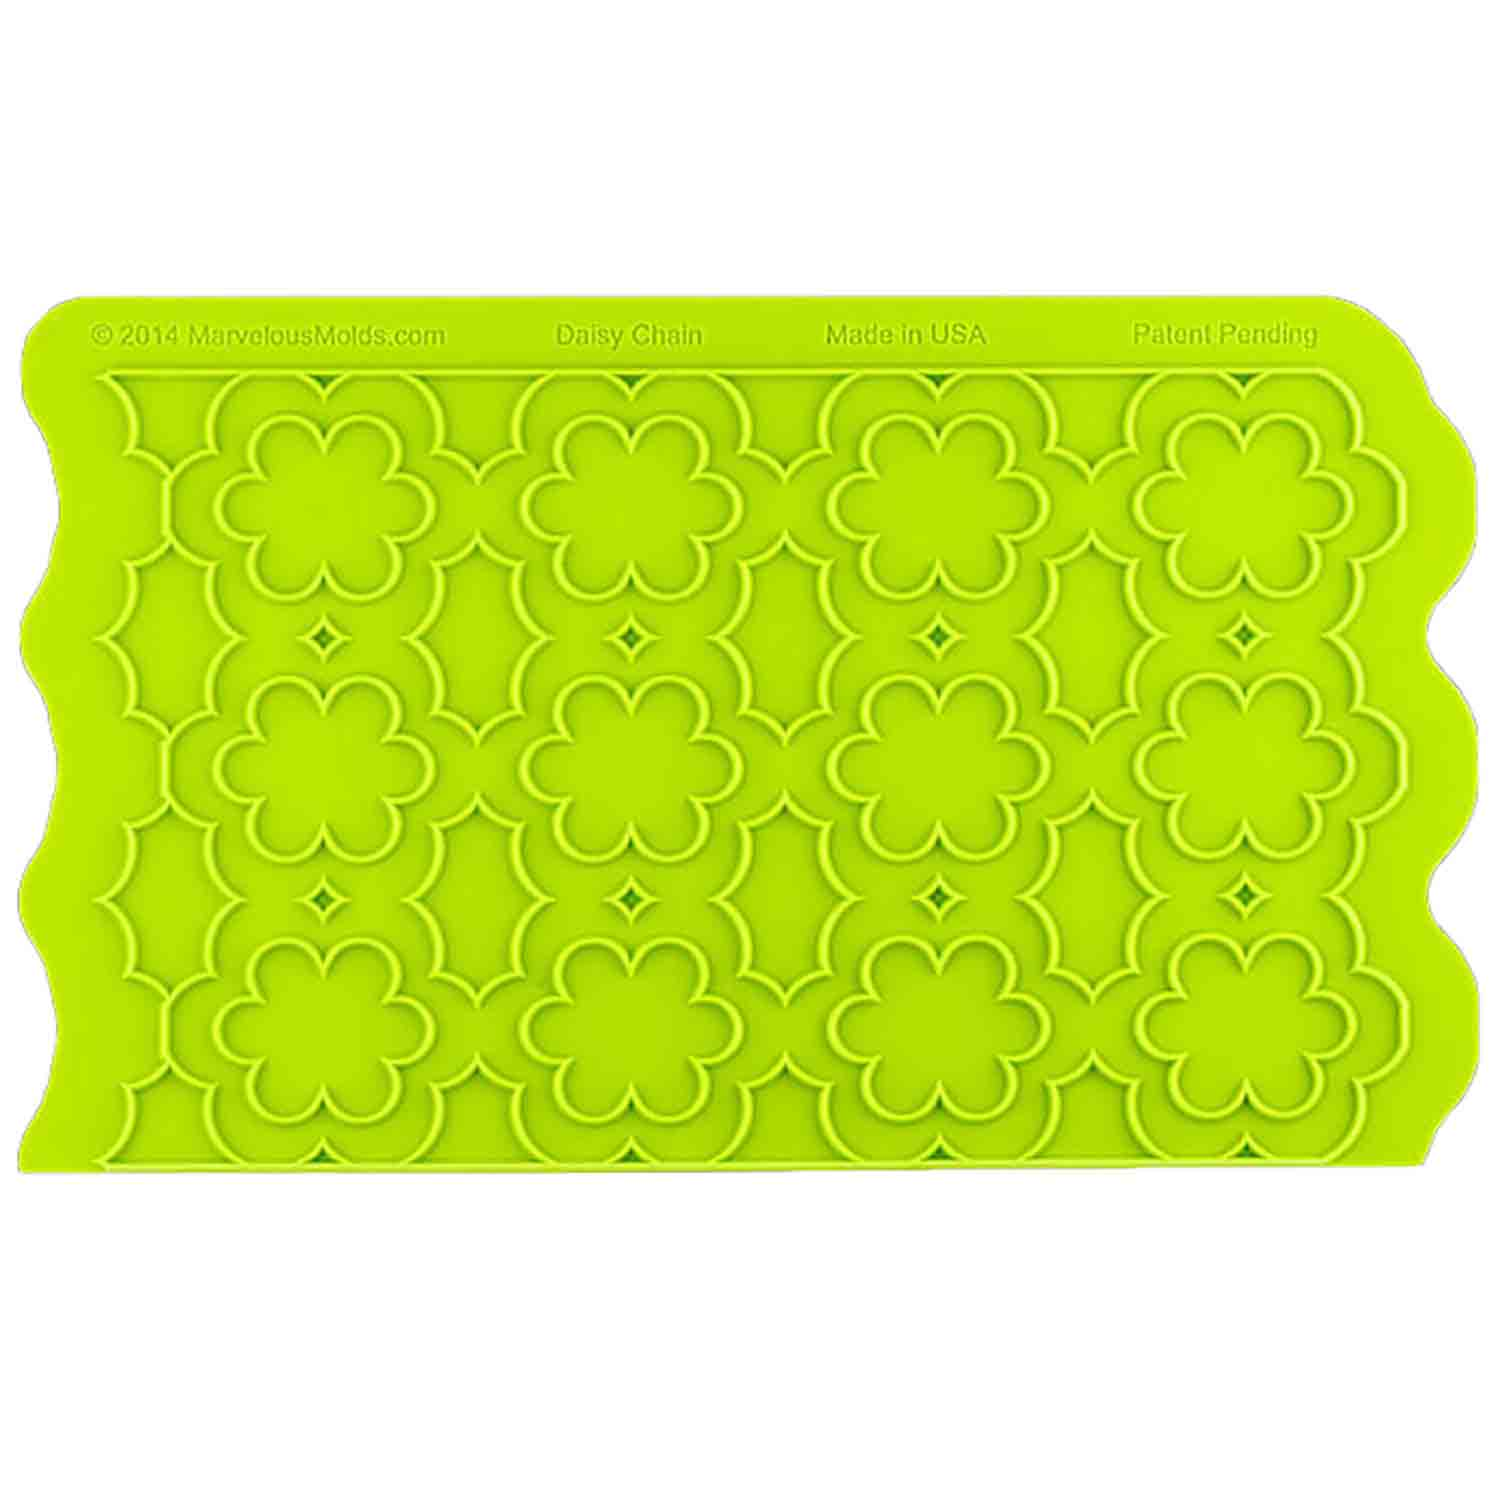 Daisy Chain Silicone Onlay Mold